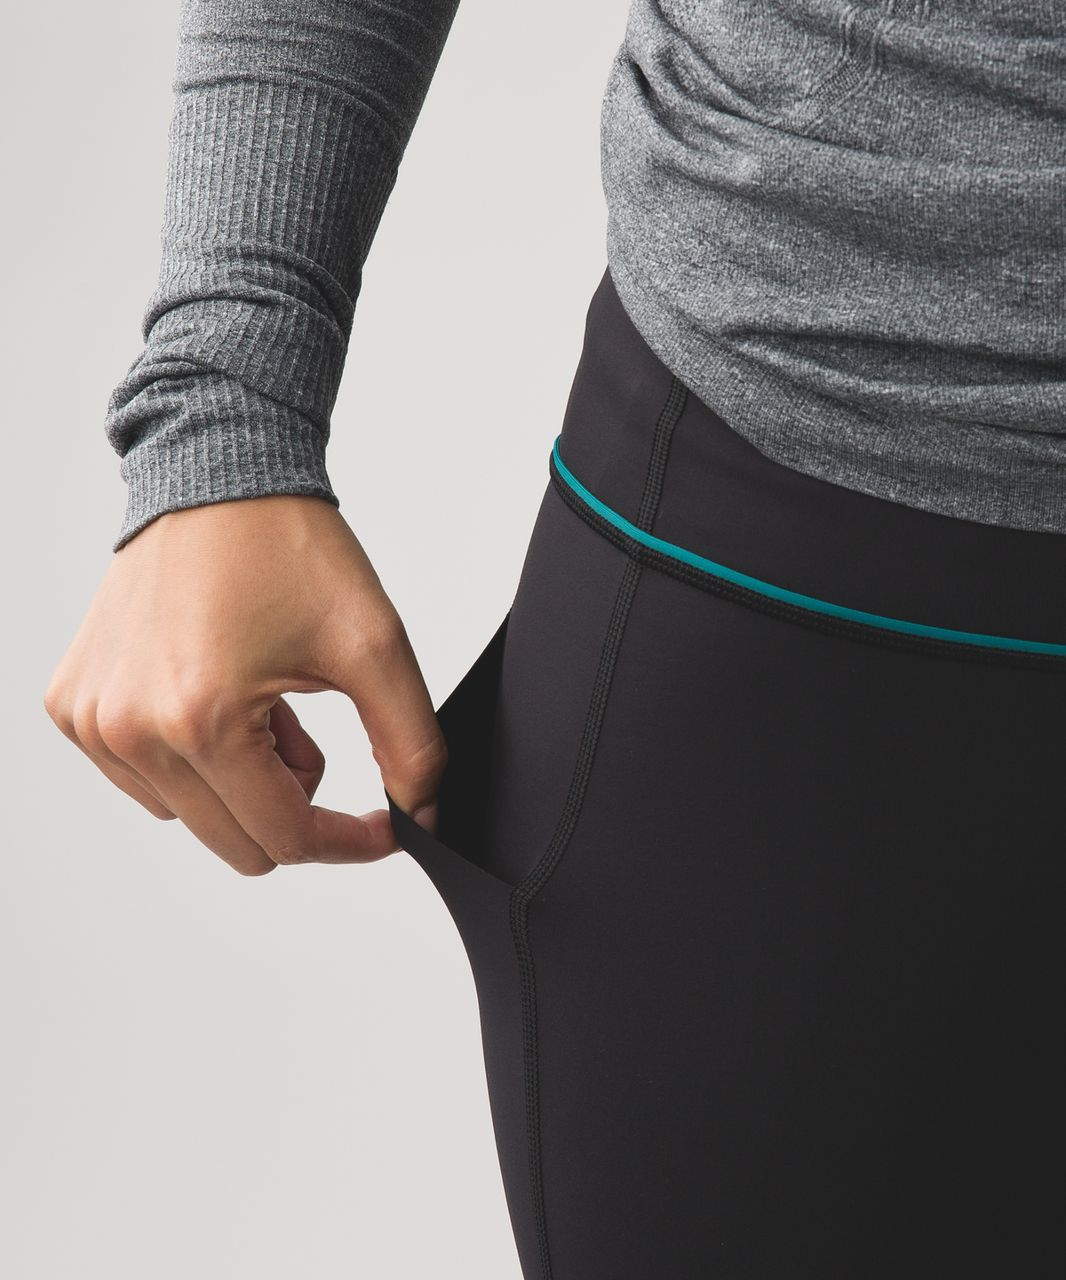 Lululemon Pace Rival Crop *Lights Out - Black / Forage Teal